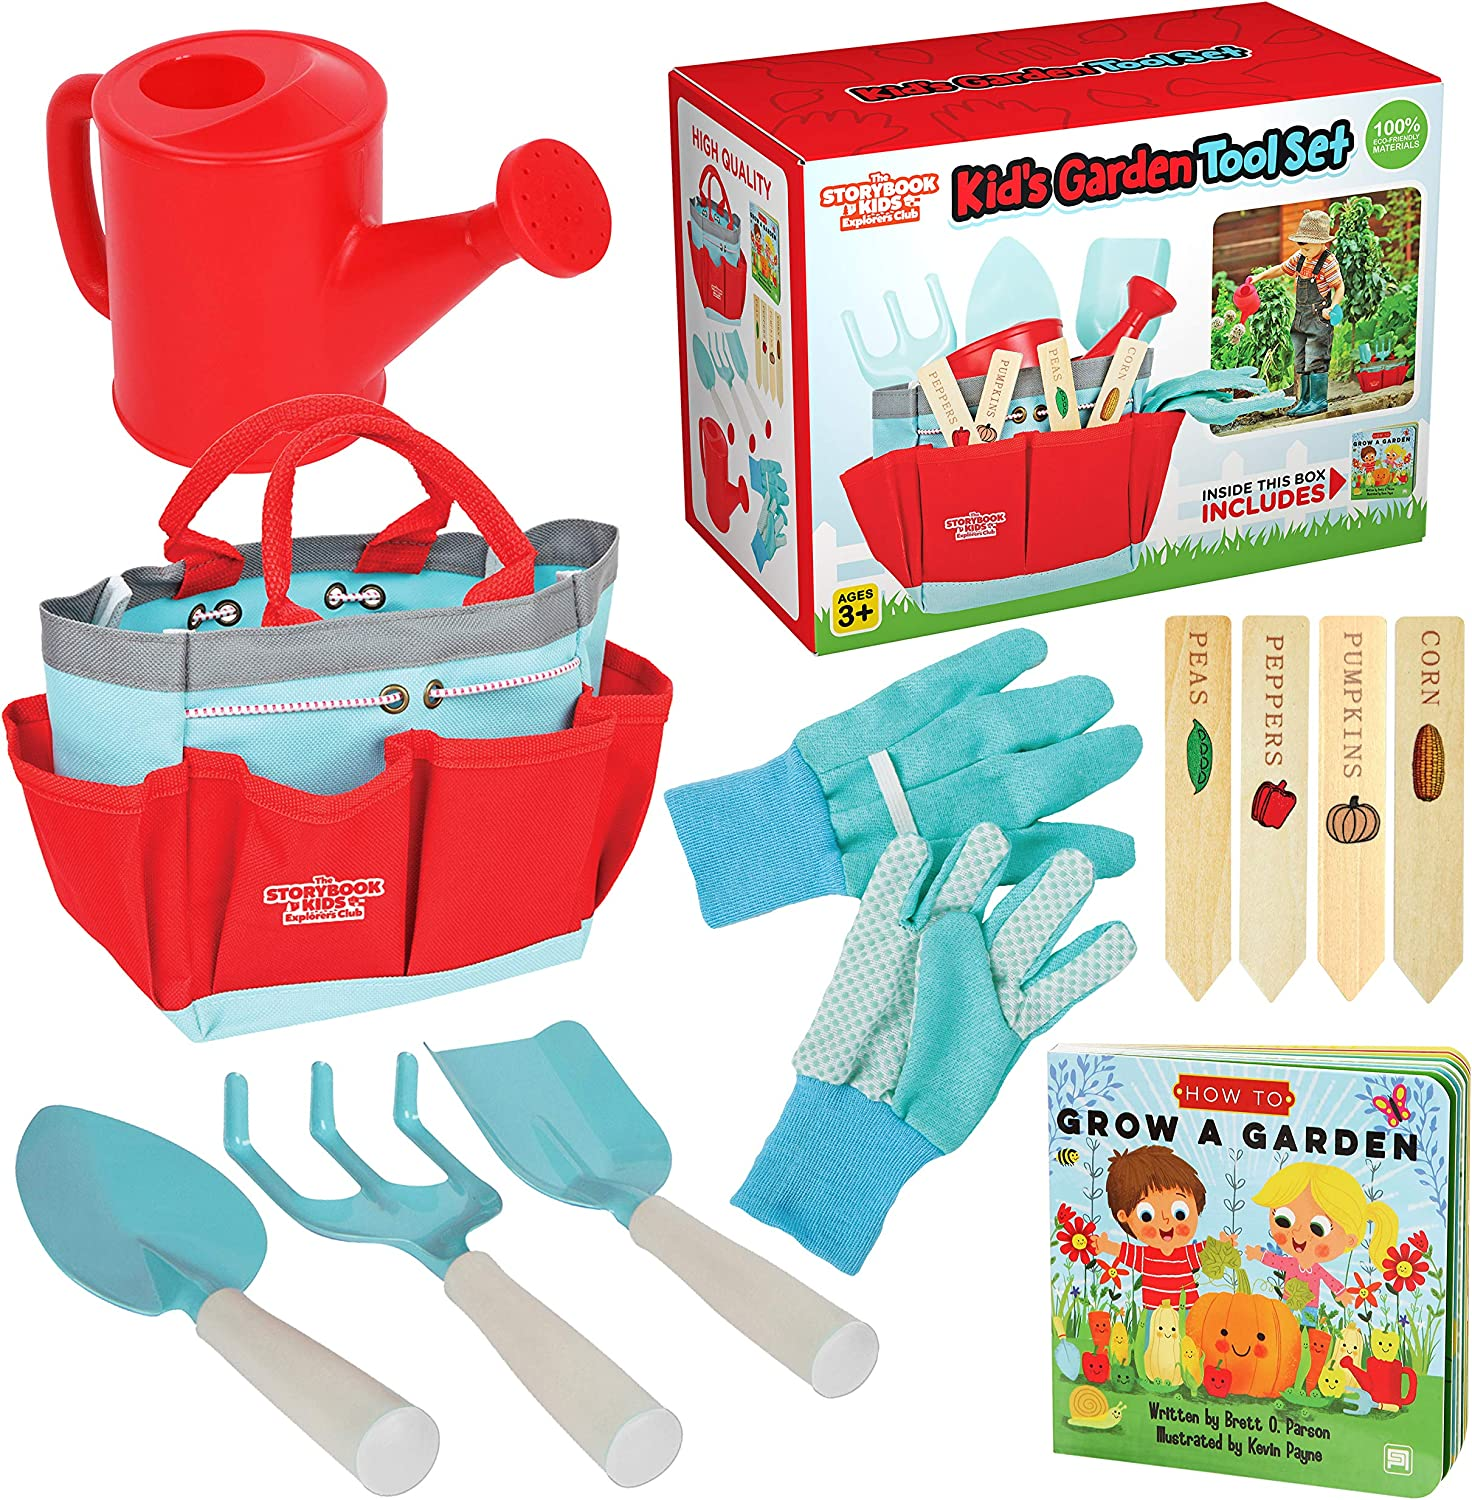 Clever Kid Toys Kids Gardening Set Includes Sturdy Tote Bag, Watering Can, Shovel, Rake, and Trowel - Kids Garden Tools : Toys & Games